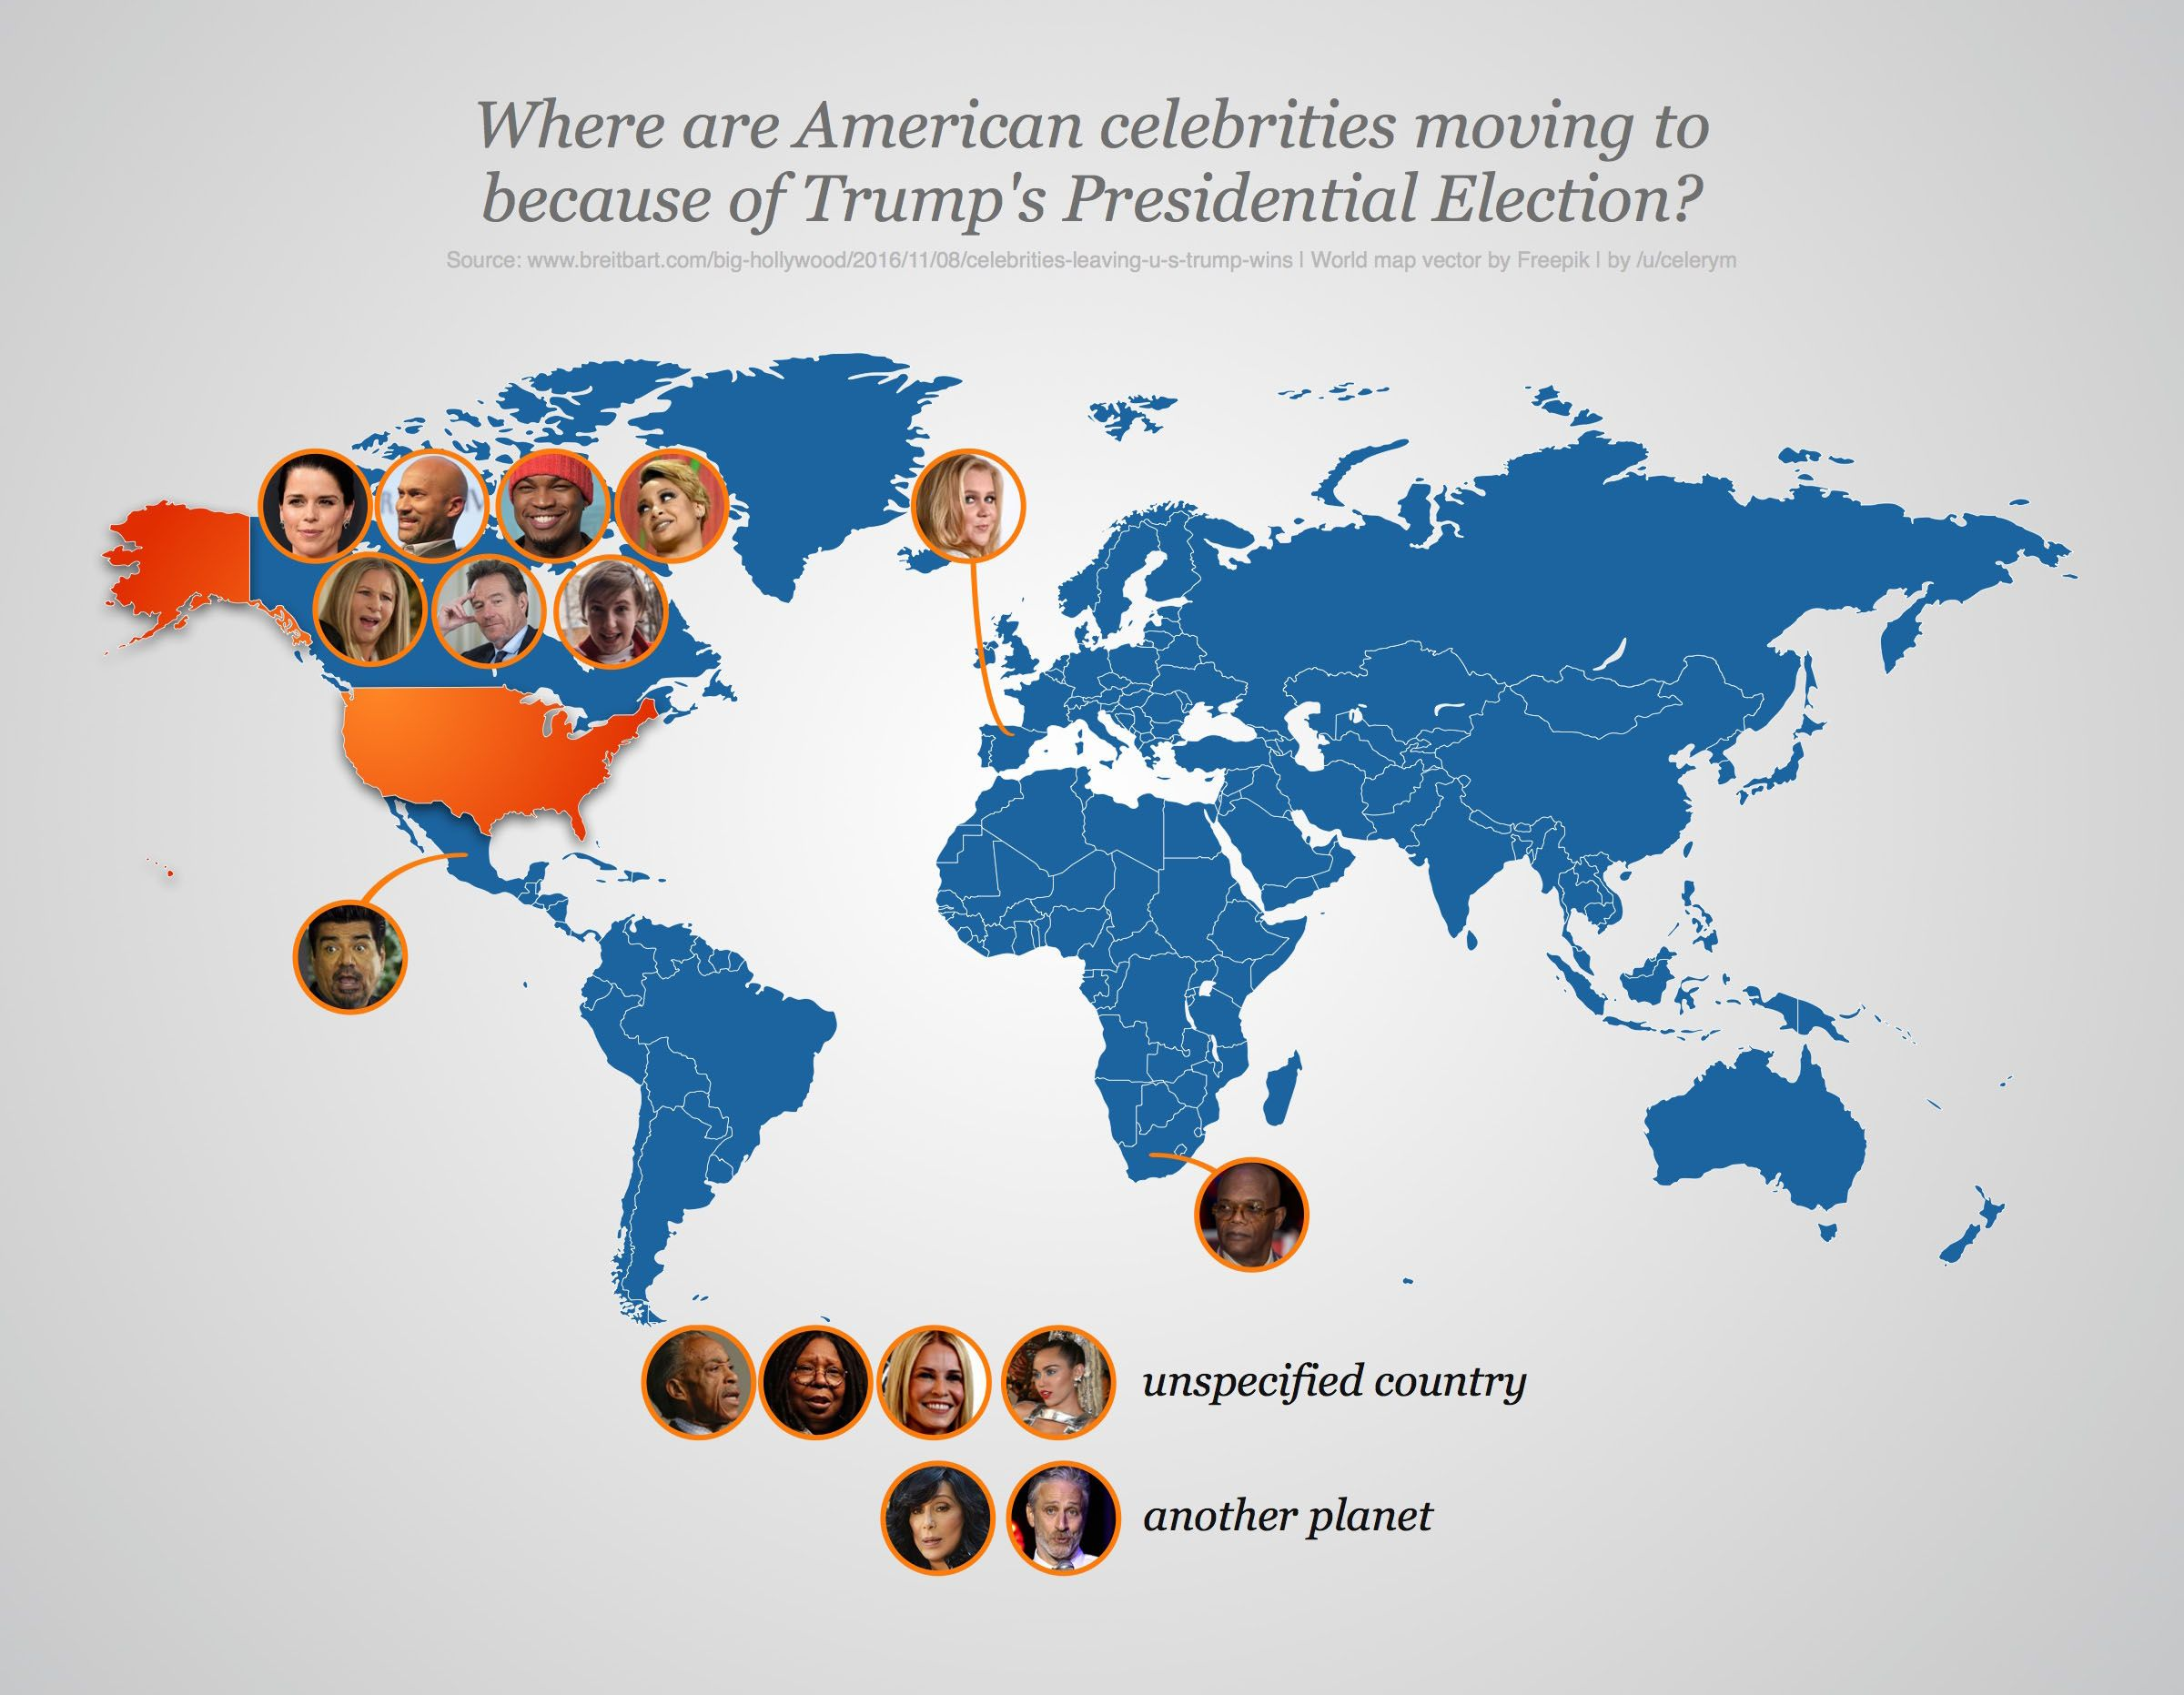 Where are american celebrities moving to because of trumps right over wrong lieber tot als rot mapsontheweb where are american celebrities moving to because of trumps presidential election gumiabroncs Images